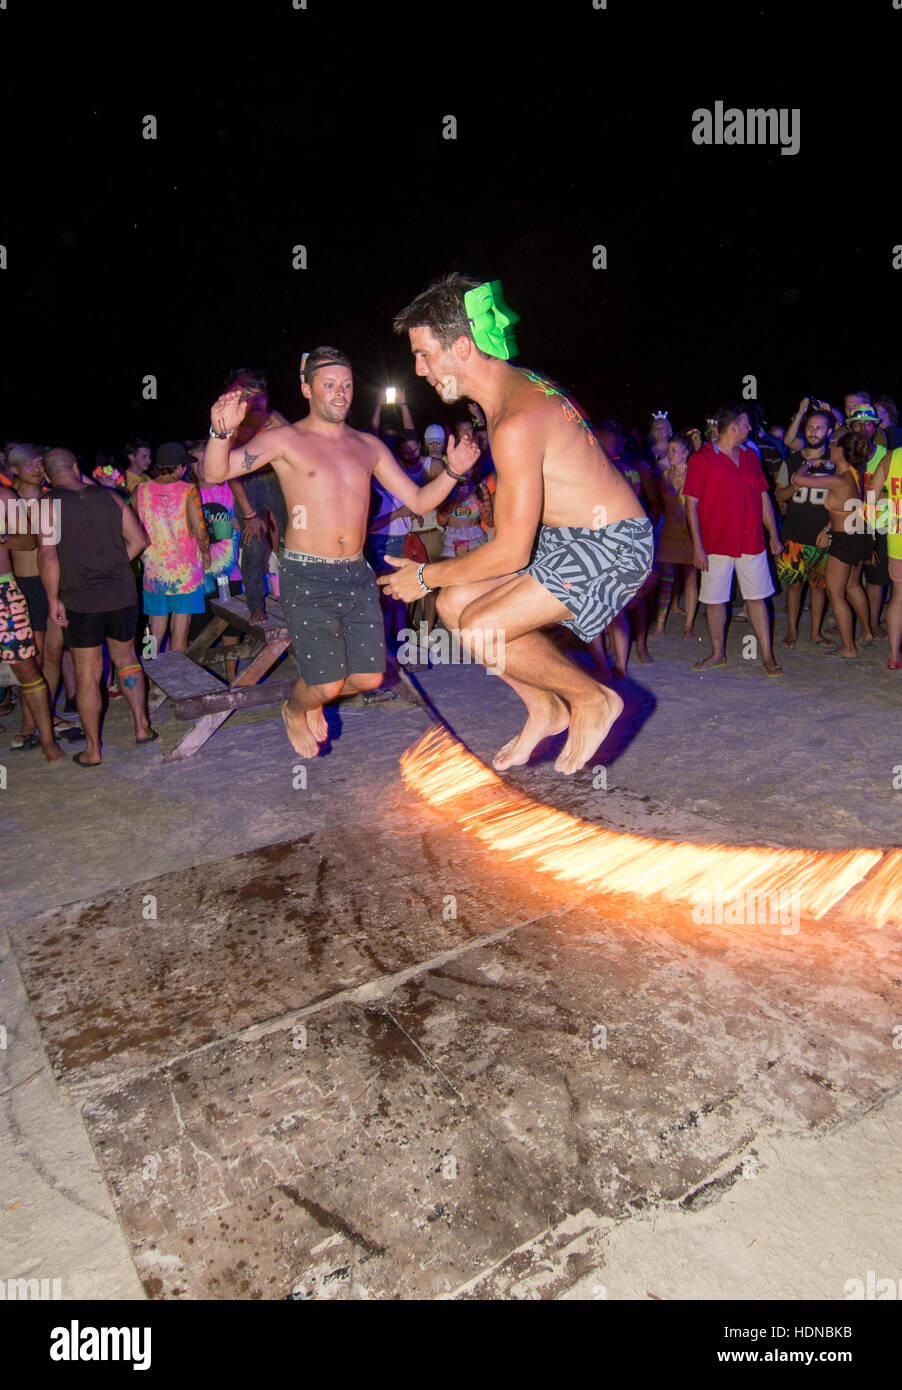 Party goers skip with burning rope at a Full Moon party on Sunrise beach Haad Rin on the island of Kho Phag Nang - Stock Image